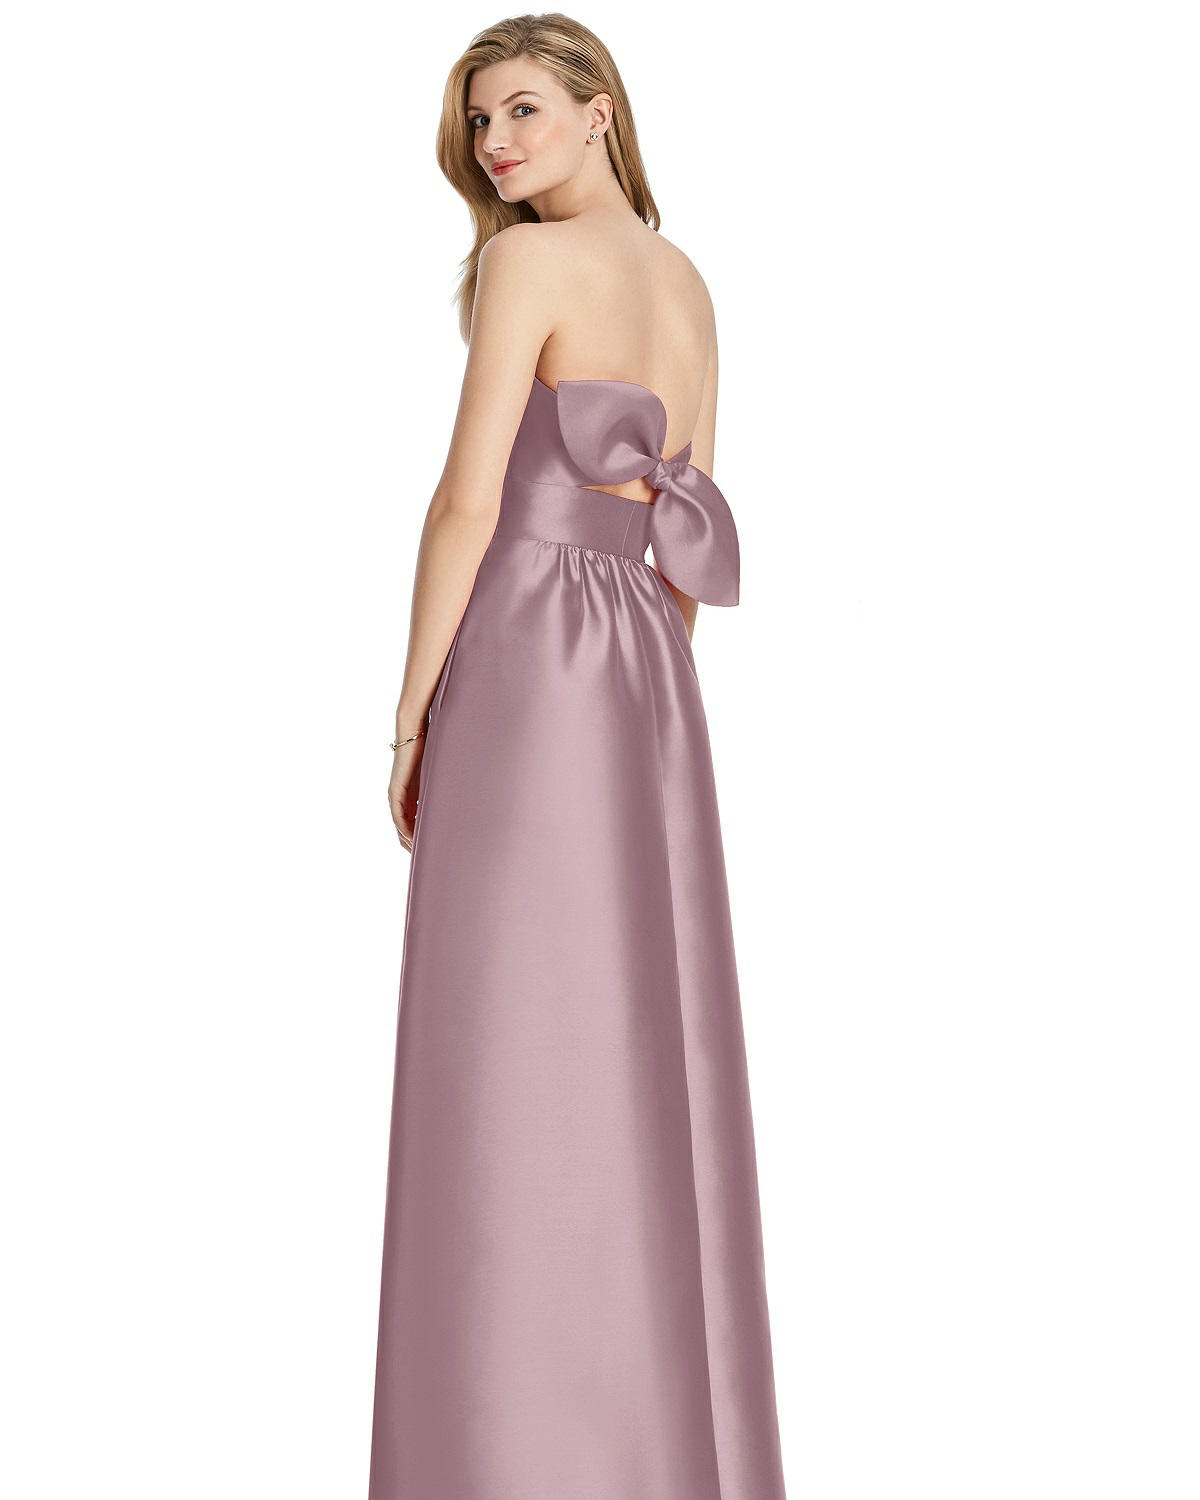 Lela Rose Bridesmaid sateen twill dress